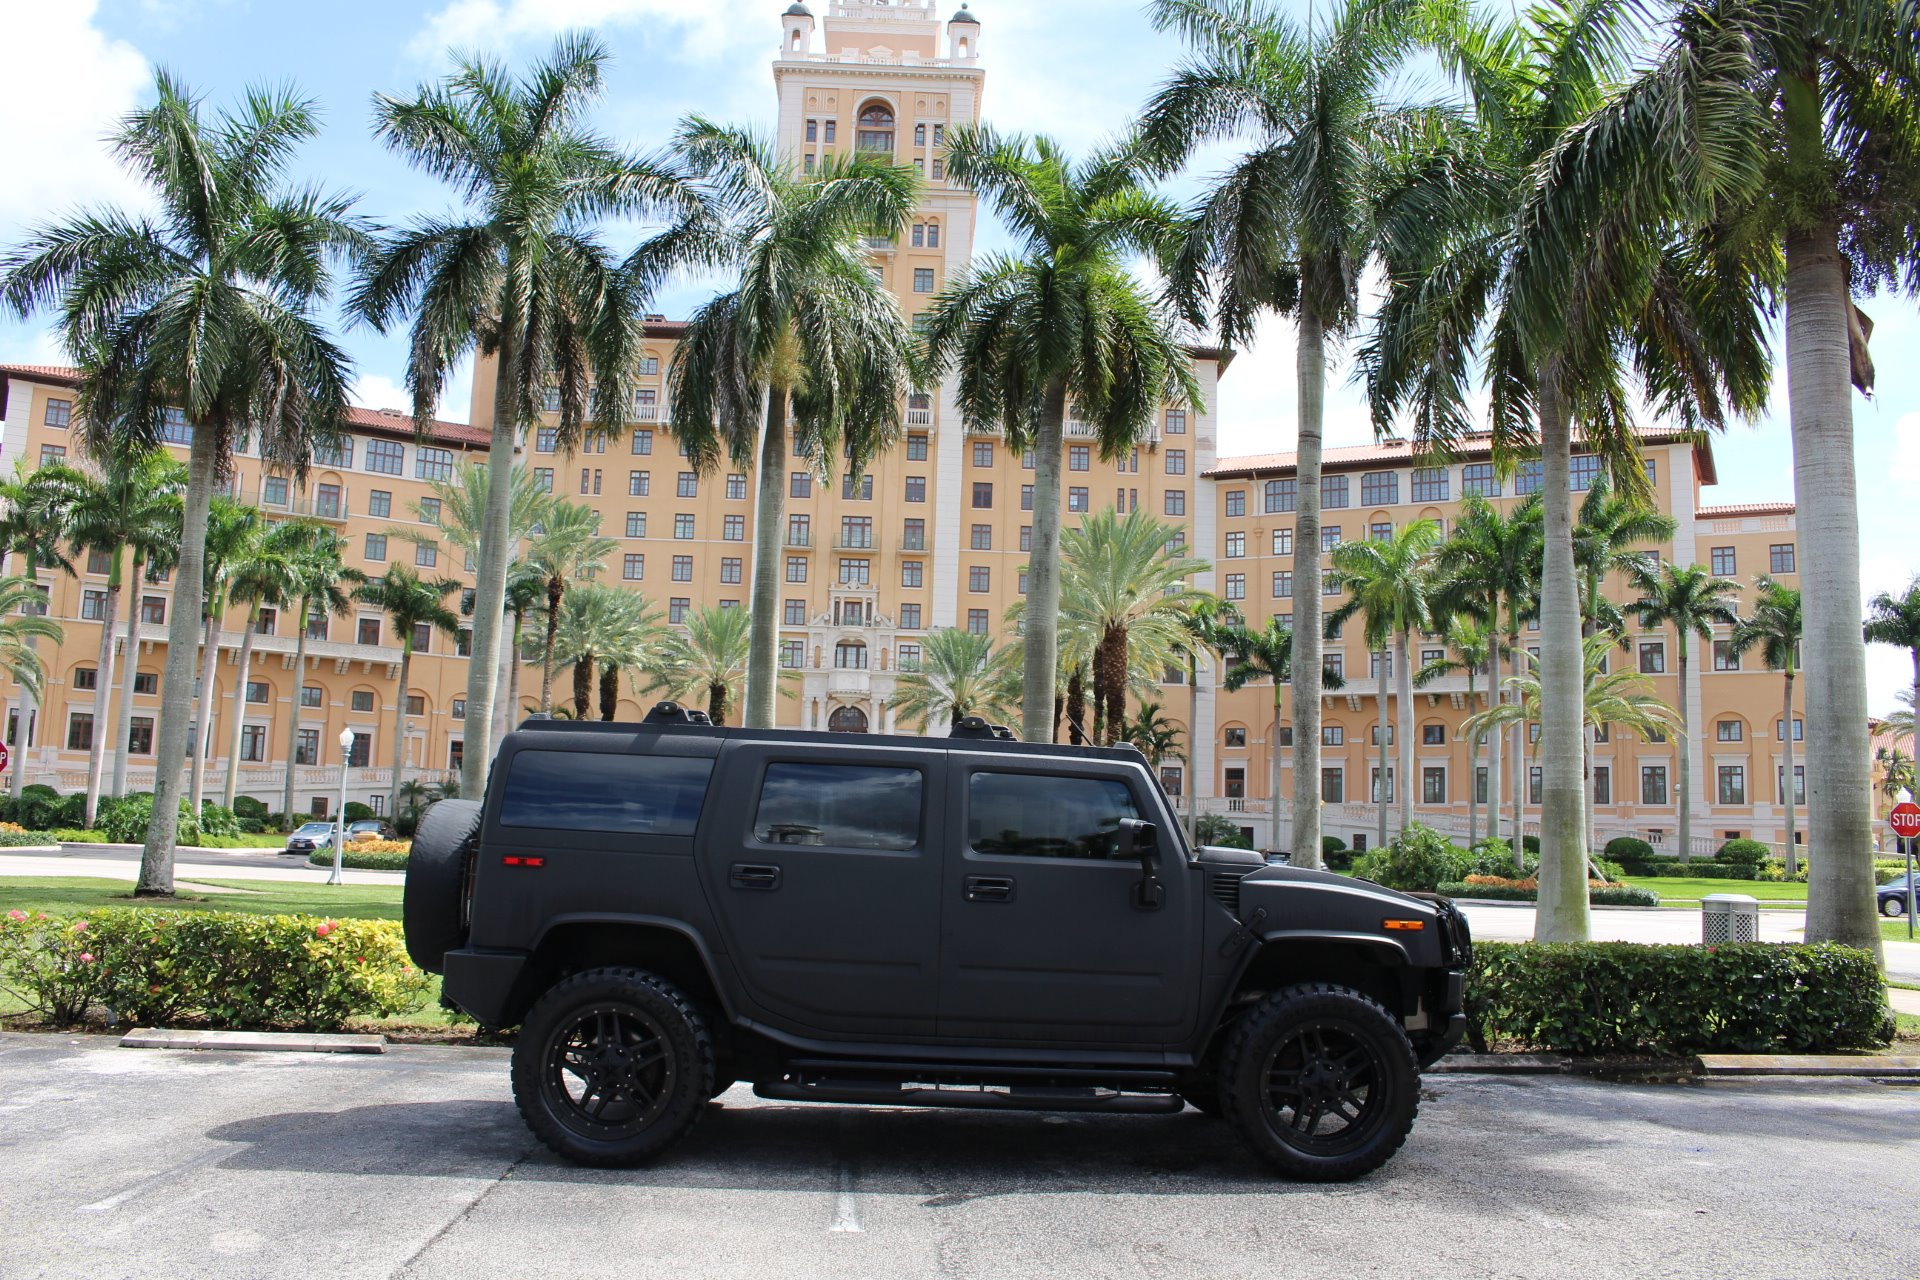 Used 2003 HUMMER H2 Lux Series for sale Sold at The Gables Sports Cars in Miami FL 33146 1